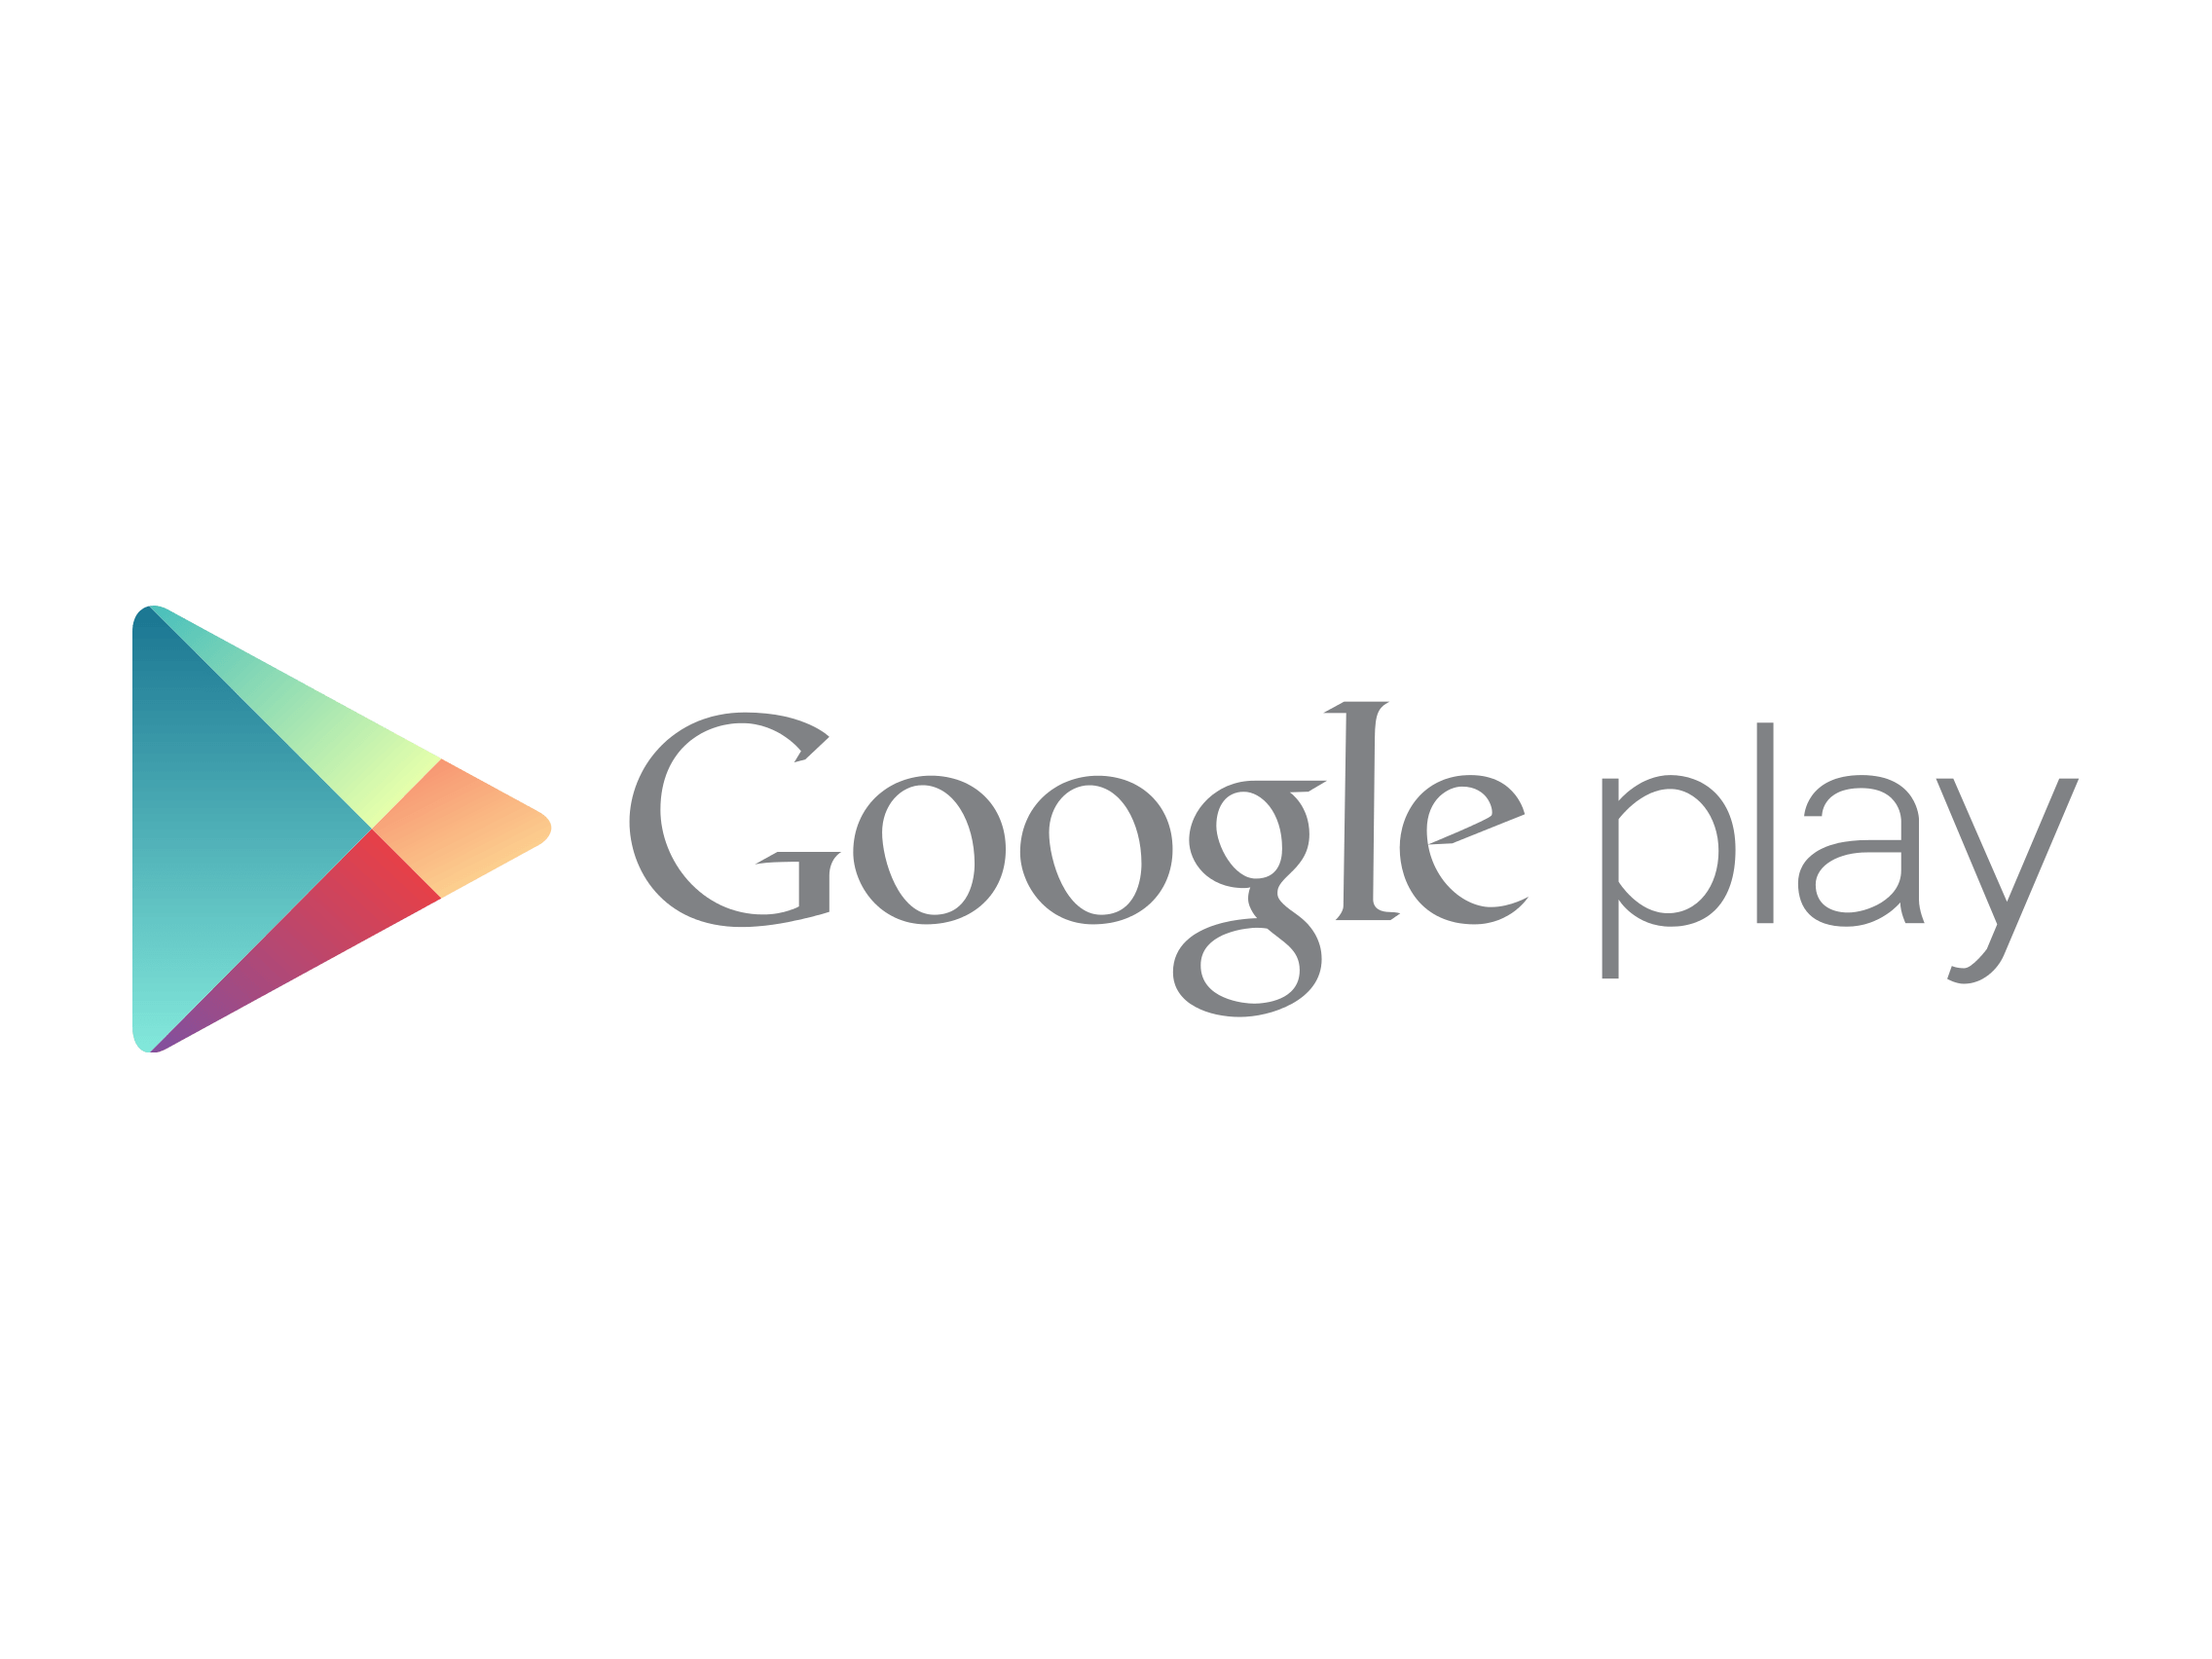 google play coupon, google play card, google play codes, free google play codes, google play codes free